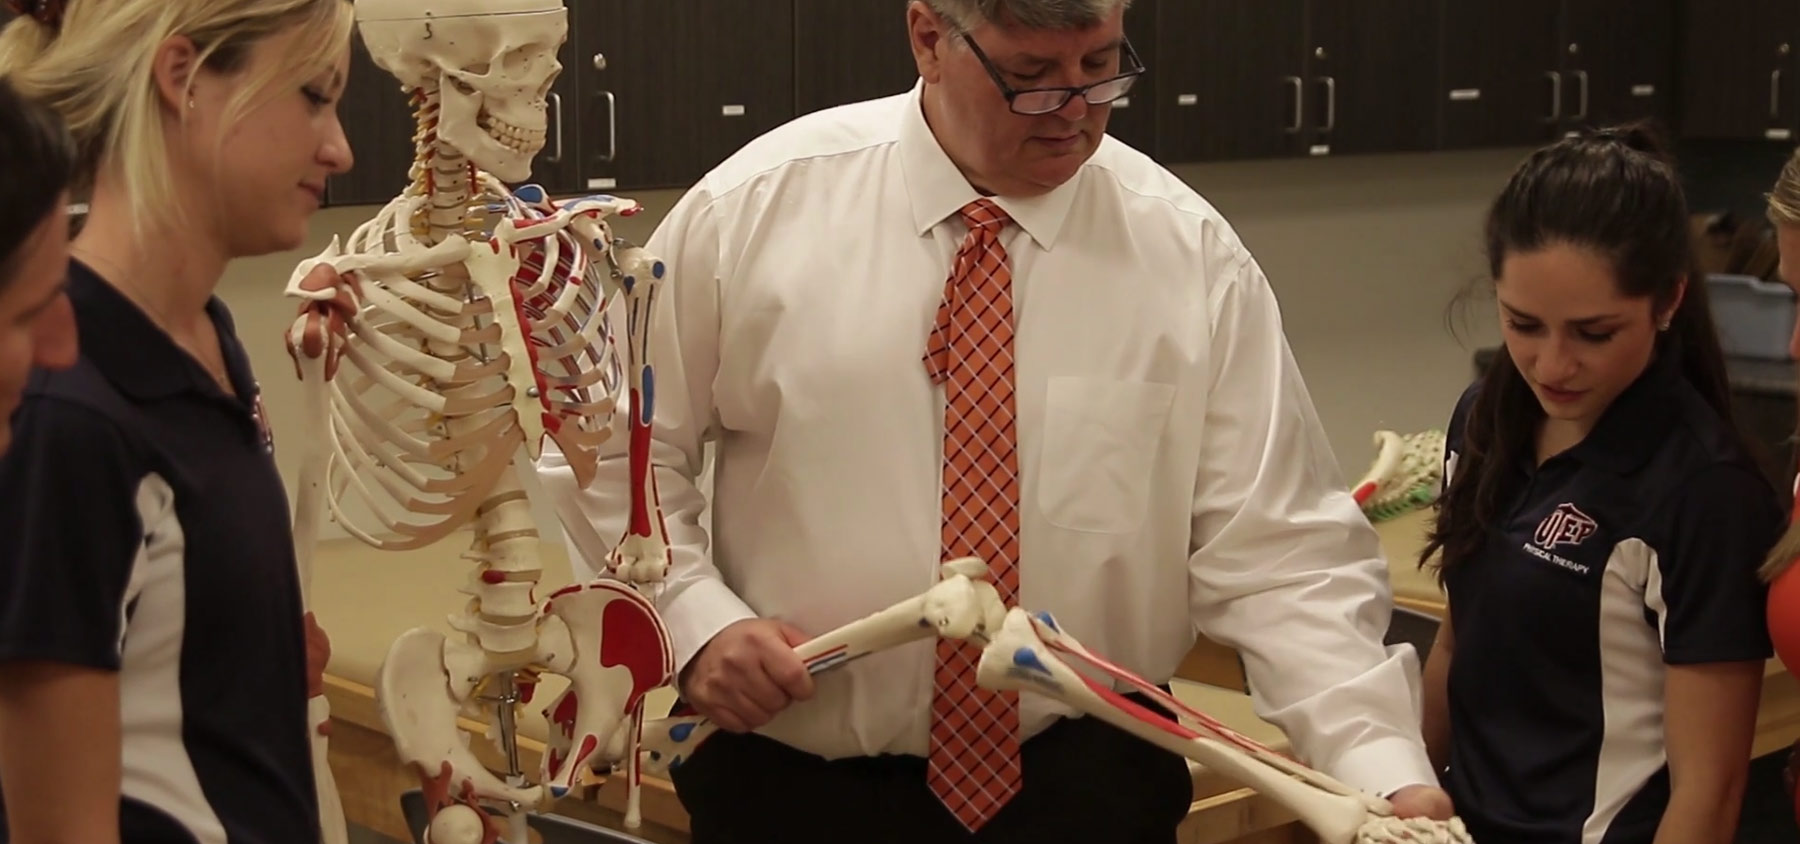 Generalist physical therapy - Learn More About Physical Therapy